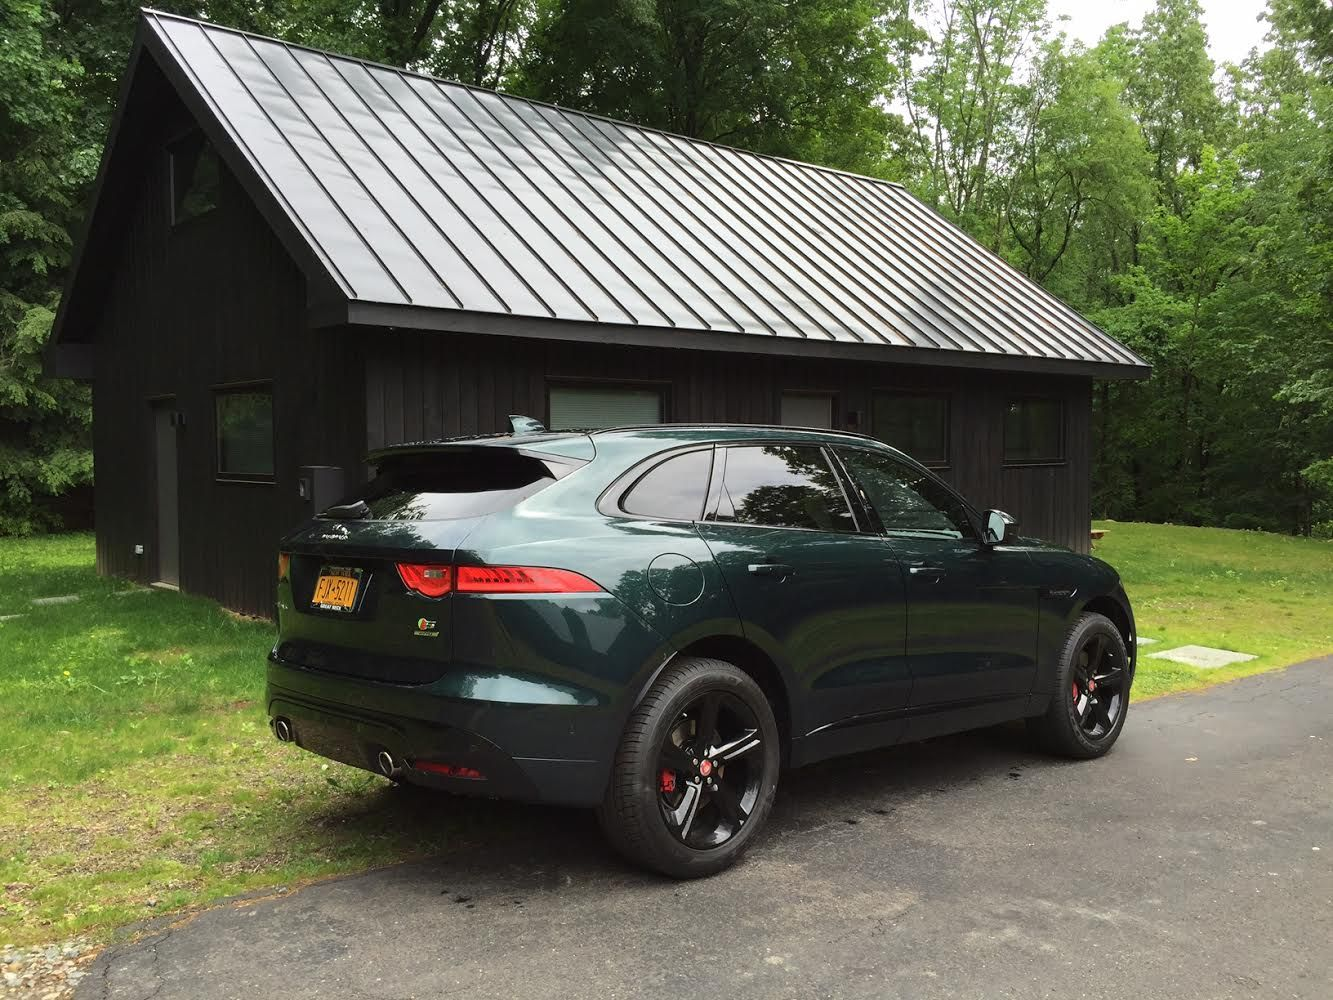 2017 jaguar f pace green. Picked Up My F-Pace On Friday And Loving Every Minute. I Thought I\u0027d Post These Pics Since There Aren\u0027t Too Many Of British Racing Green With The 2017 Jaguar F Pace